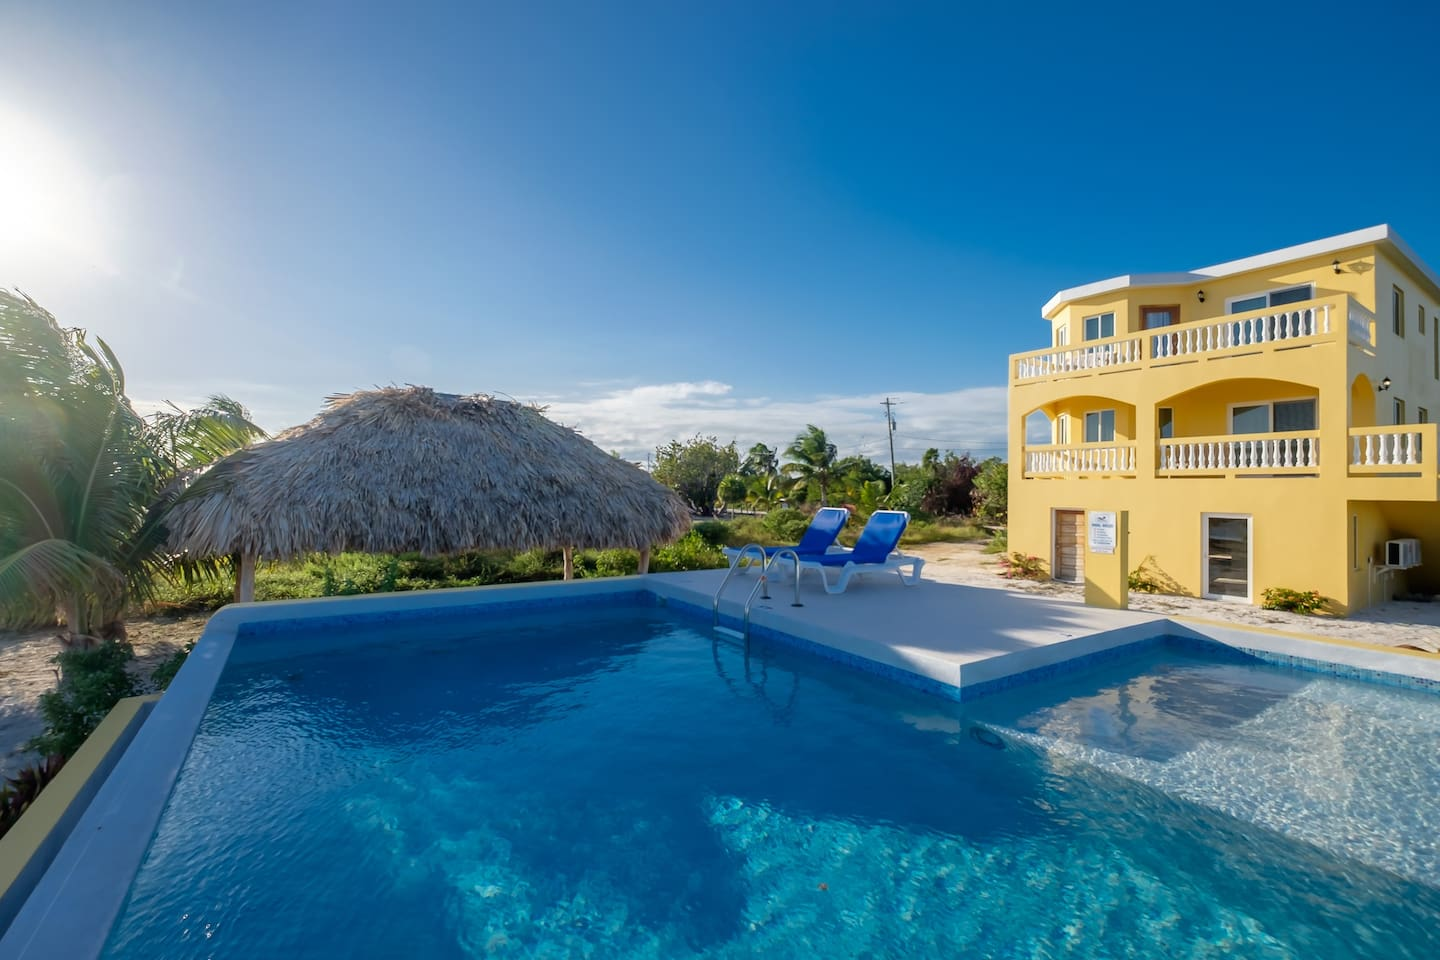 It's pool time!! Seahaven Beach House, located ocean front with own private pool!